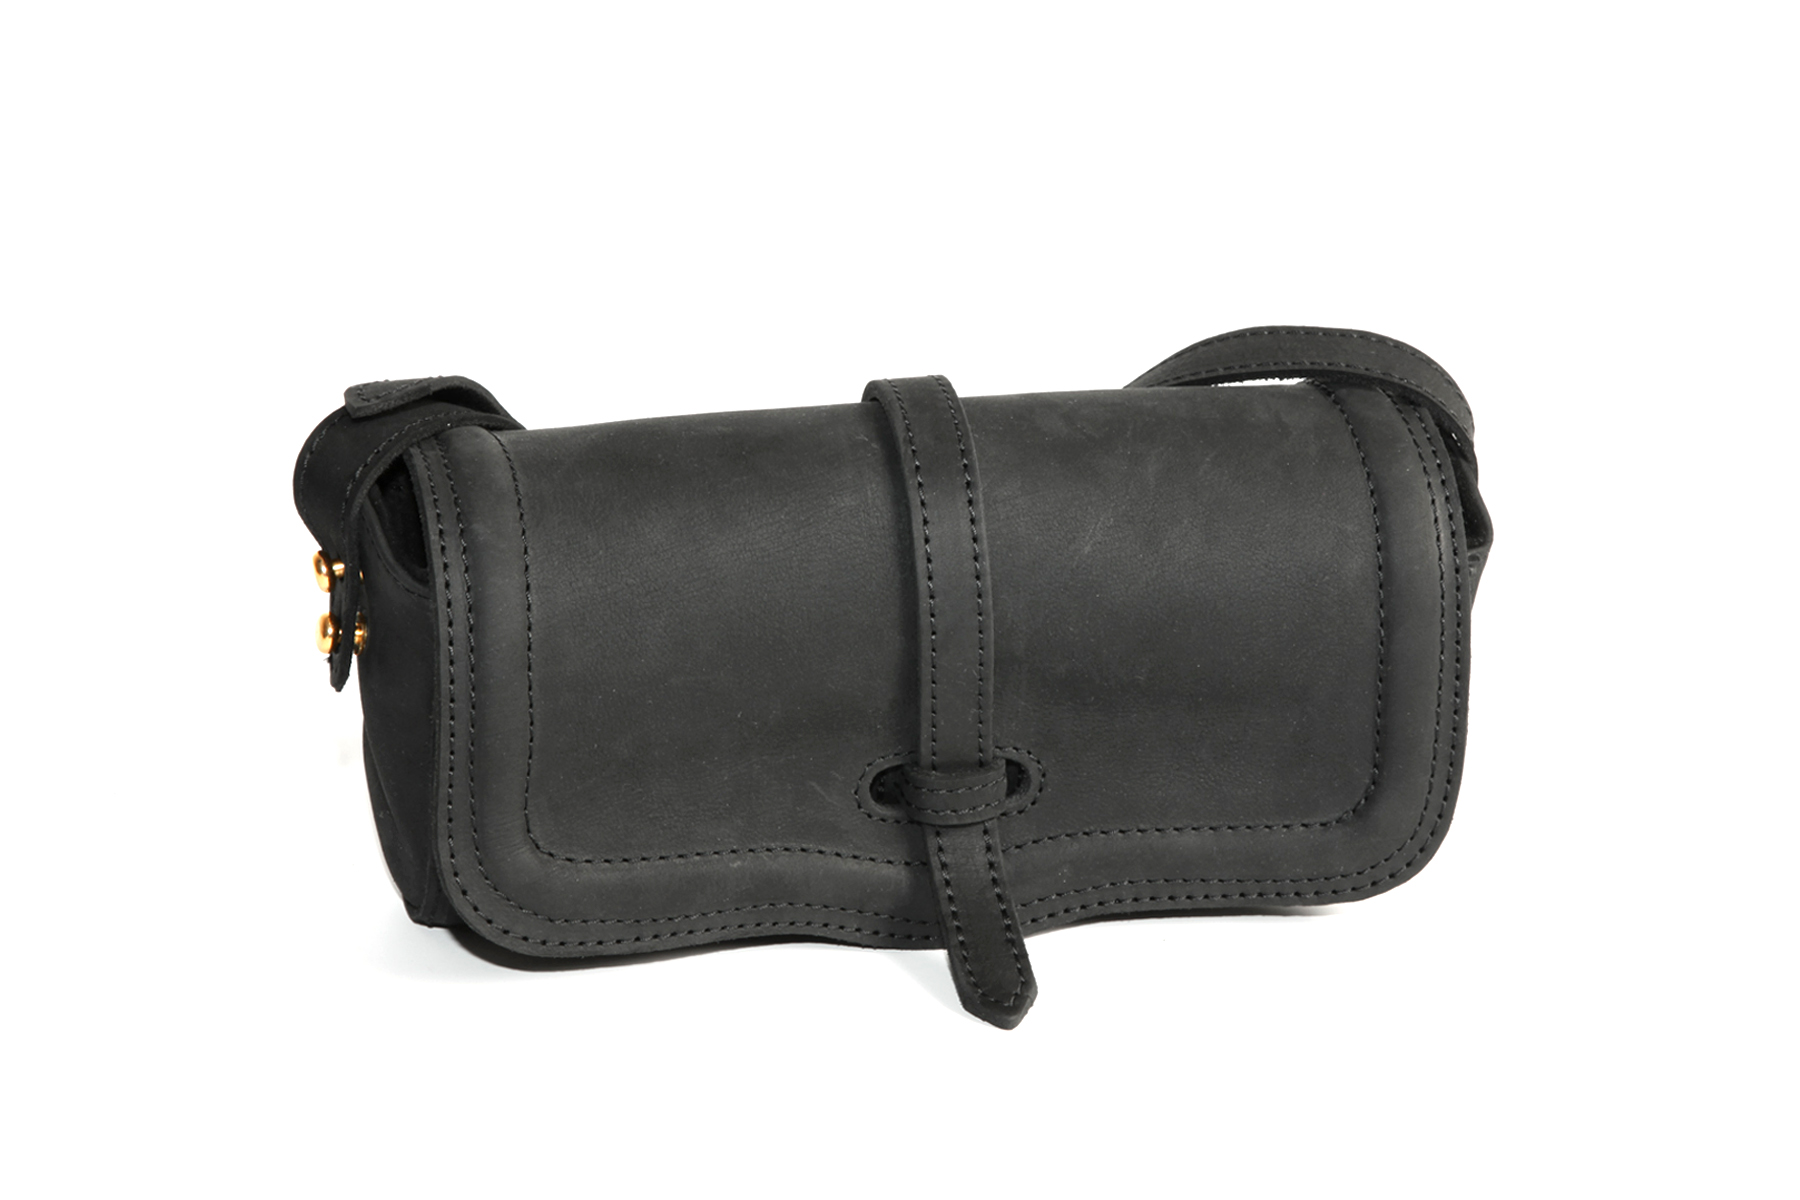 Mahiout Tatra clutch in leather